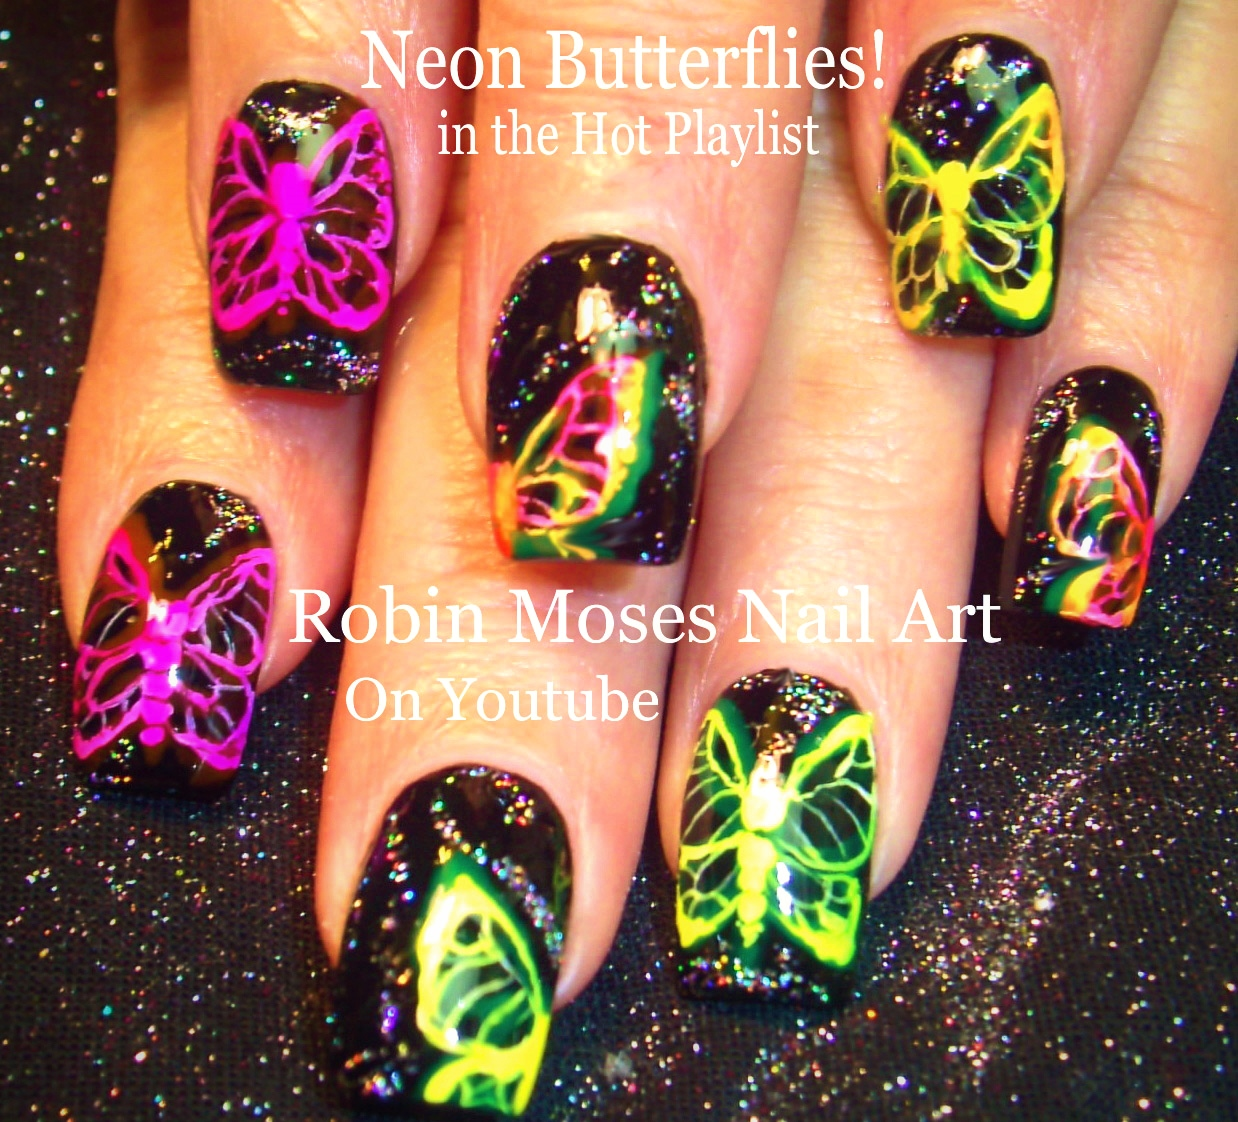 Robin Moses Nail Art February 2015: Robin Moses Nail Art: Green Fairy Butterfly Moth Nails